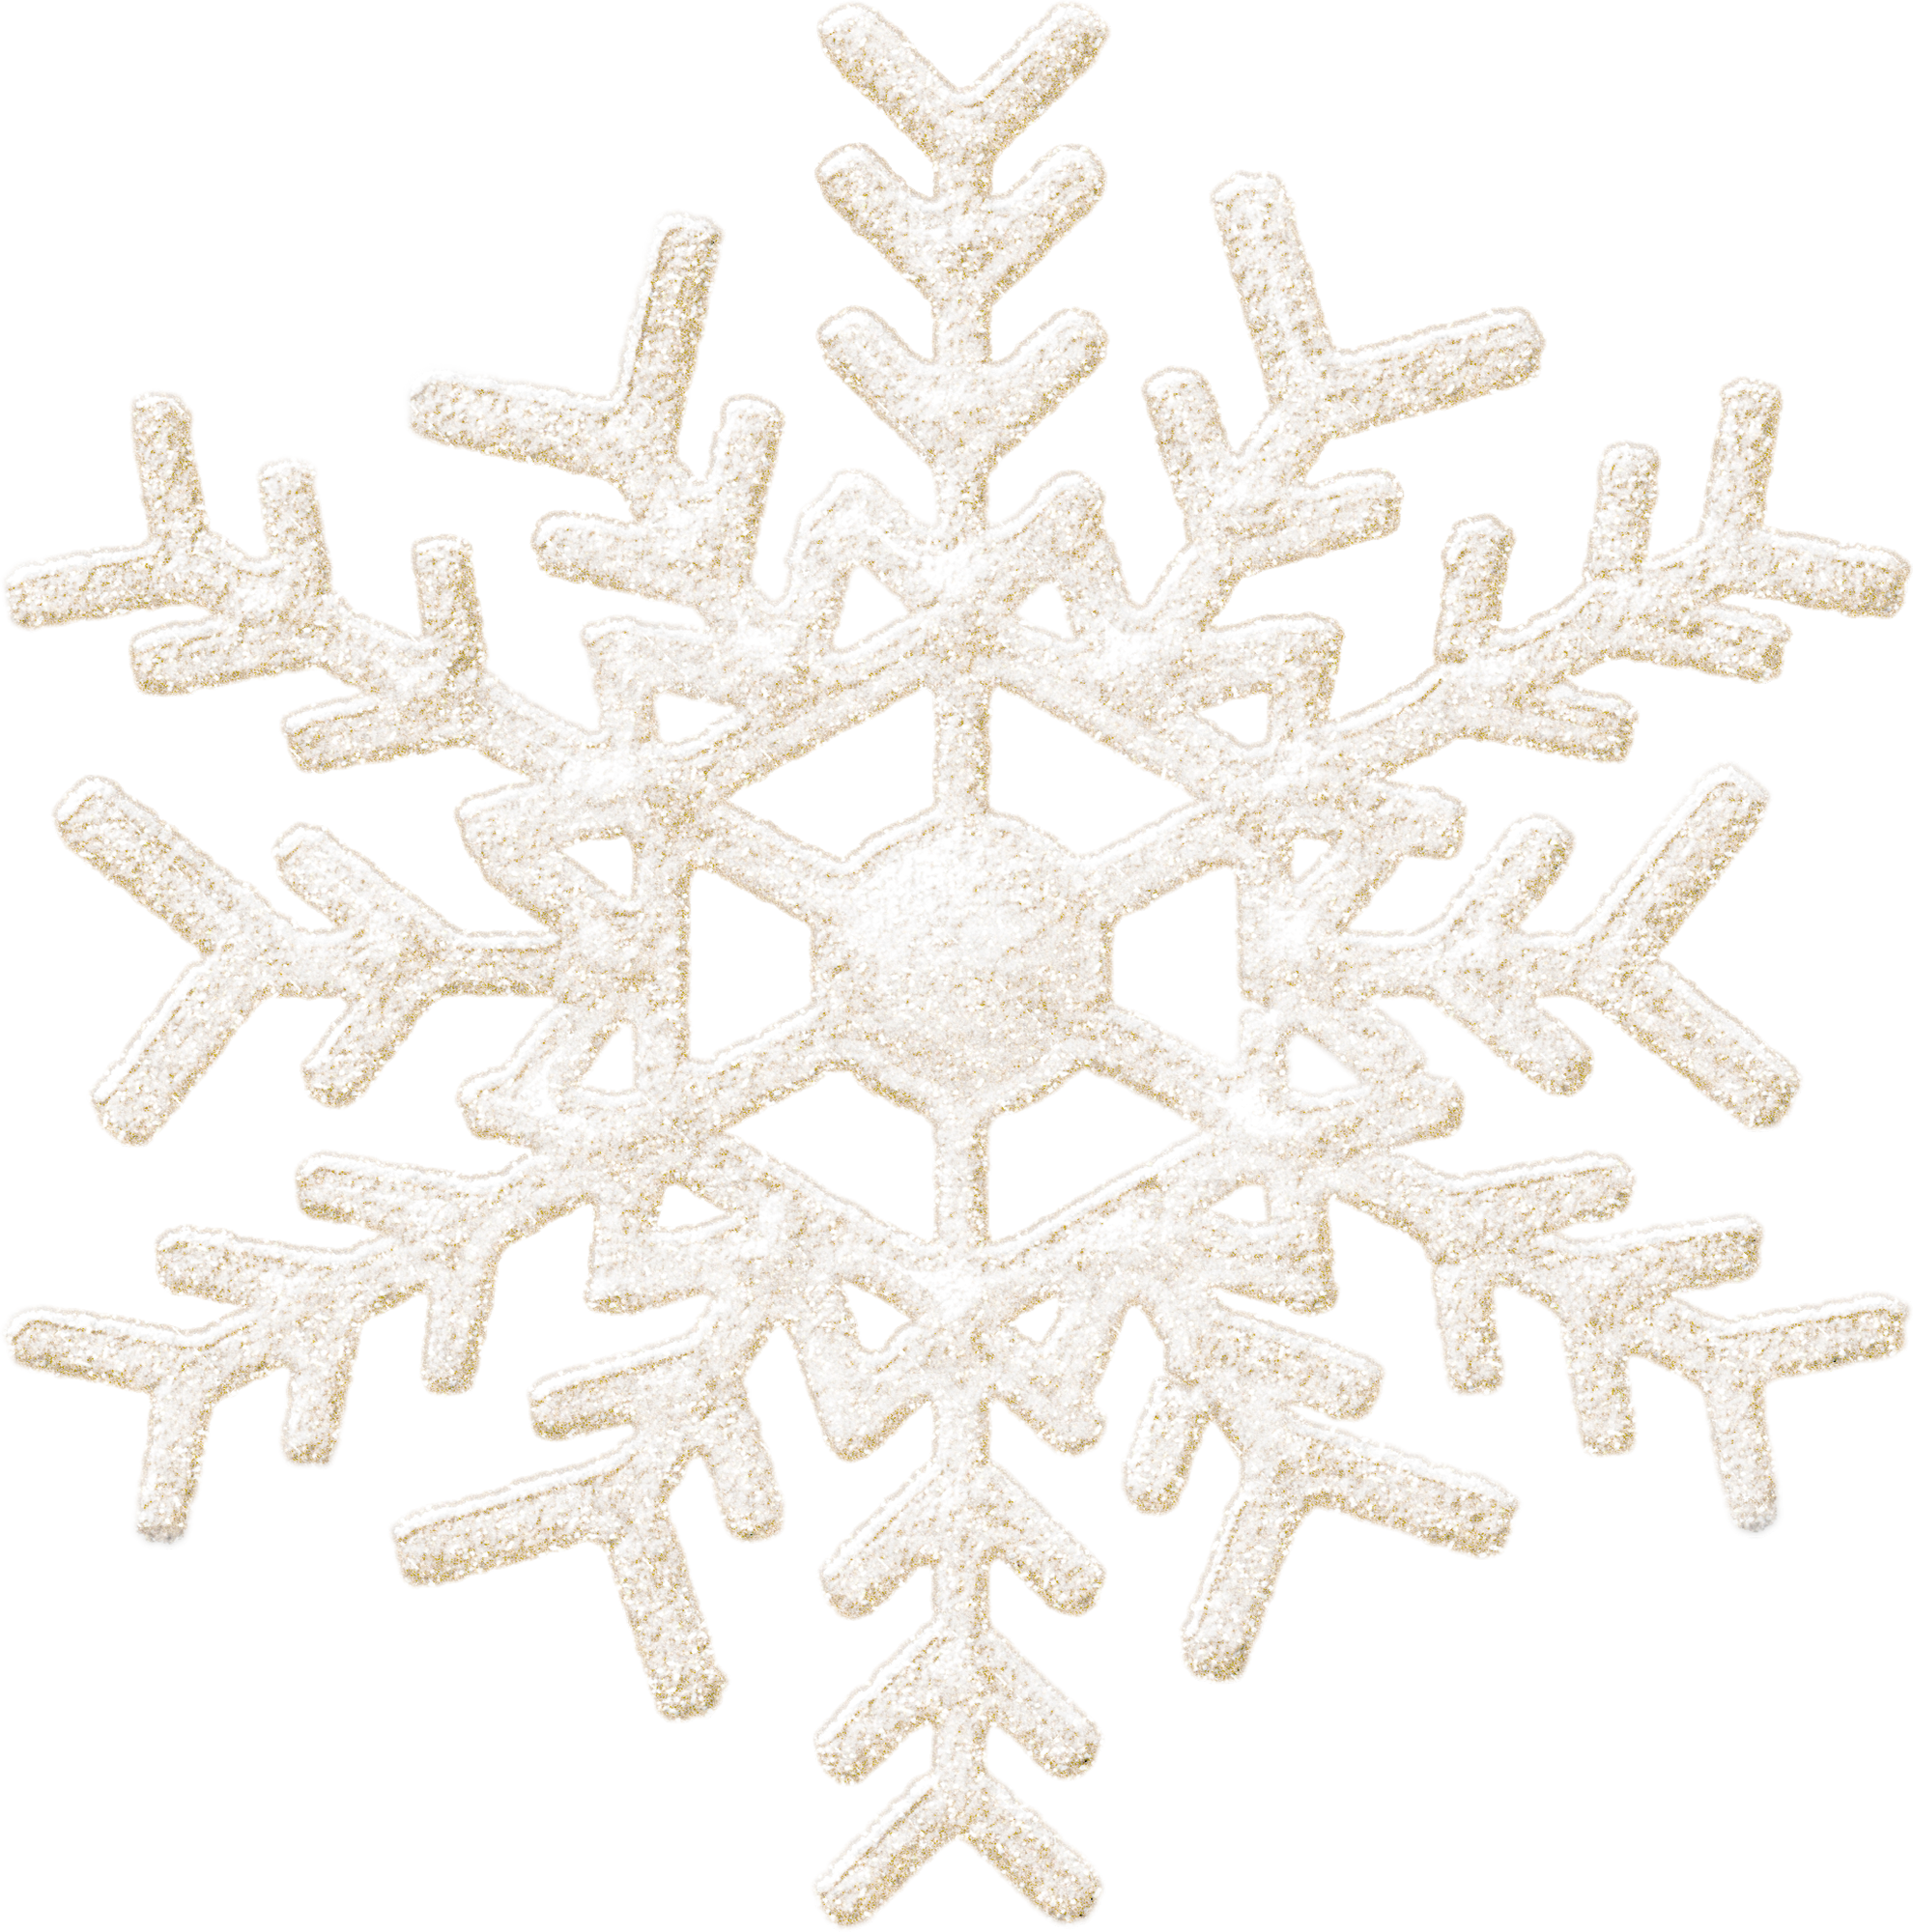 Snowflakes png high resolution. White snowflake pictures free